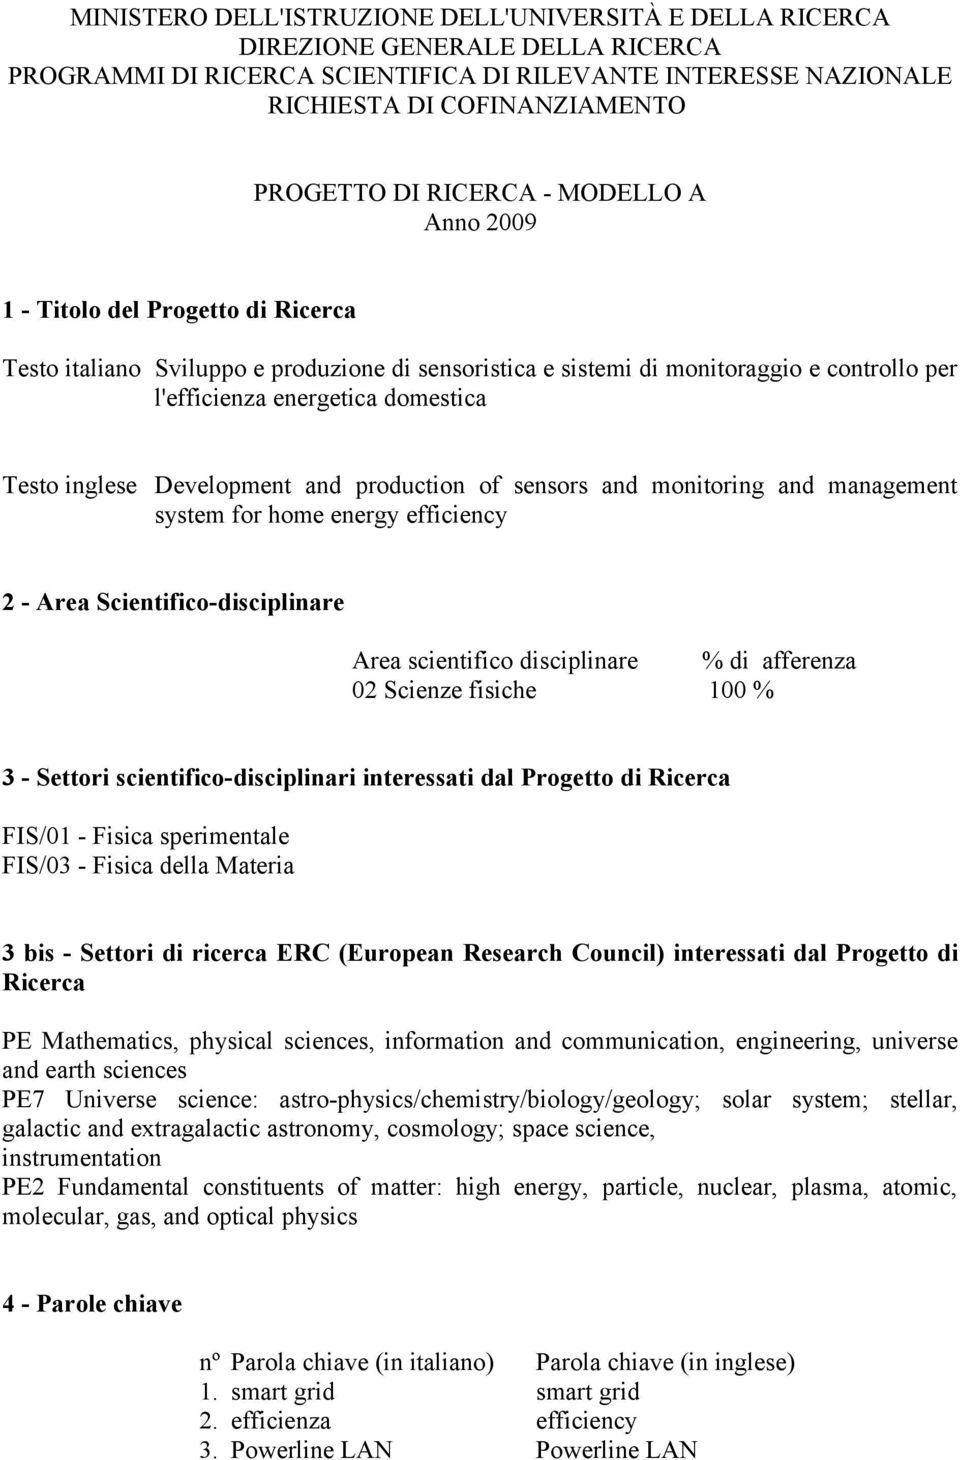 inglese Development and production of sensors and monitoring and management system for home energy efficiency 2 - Area Scientifico-disciplinare Area scientifico disciplinare % di afferenza 02 Scienze